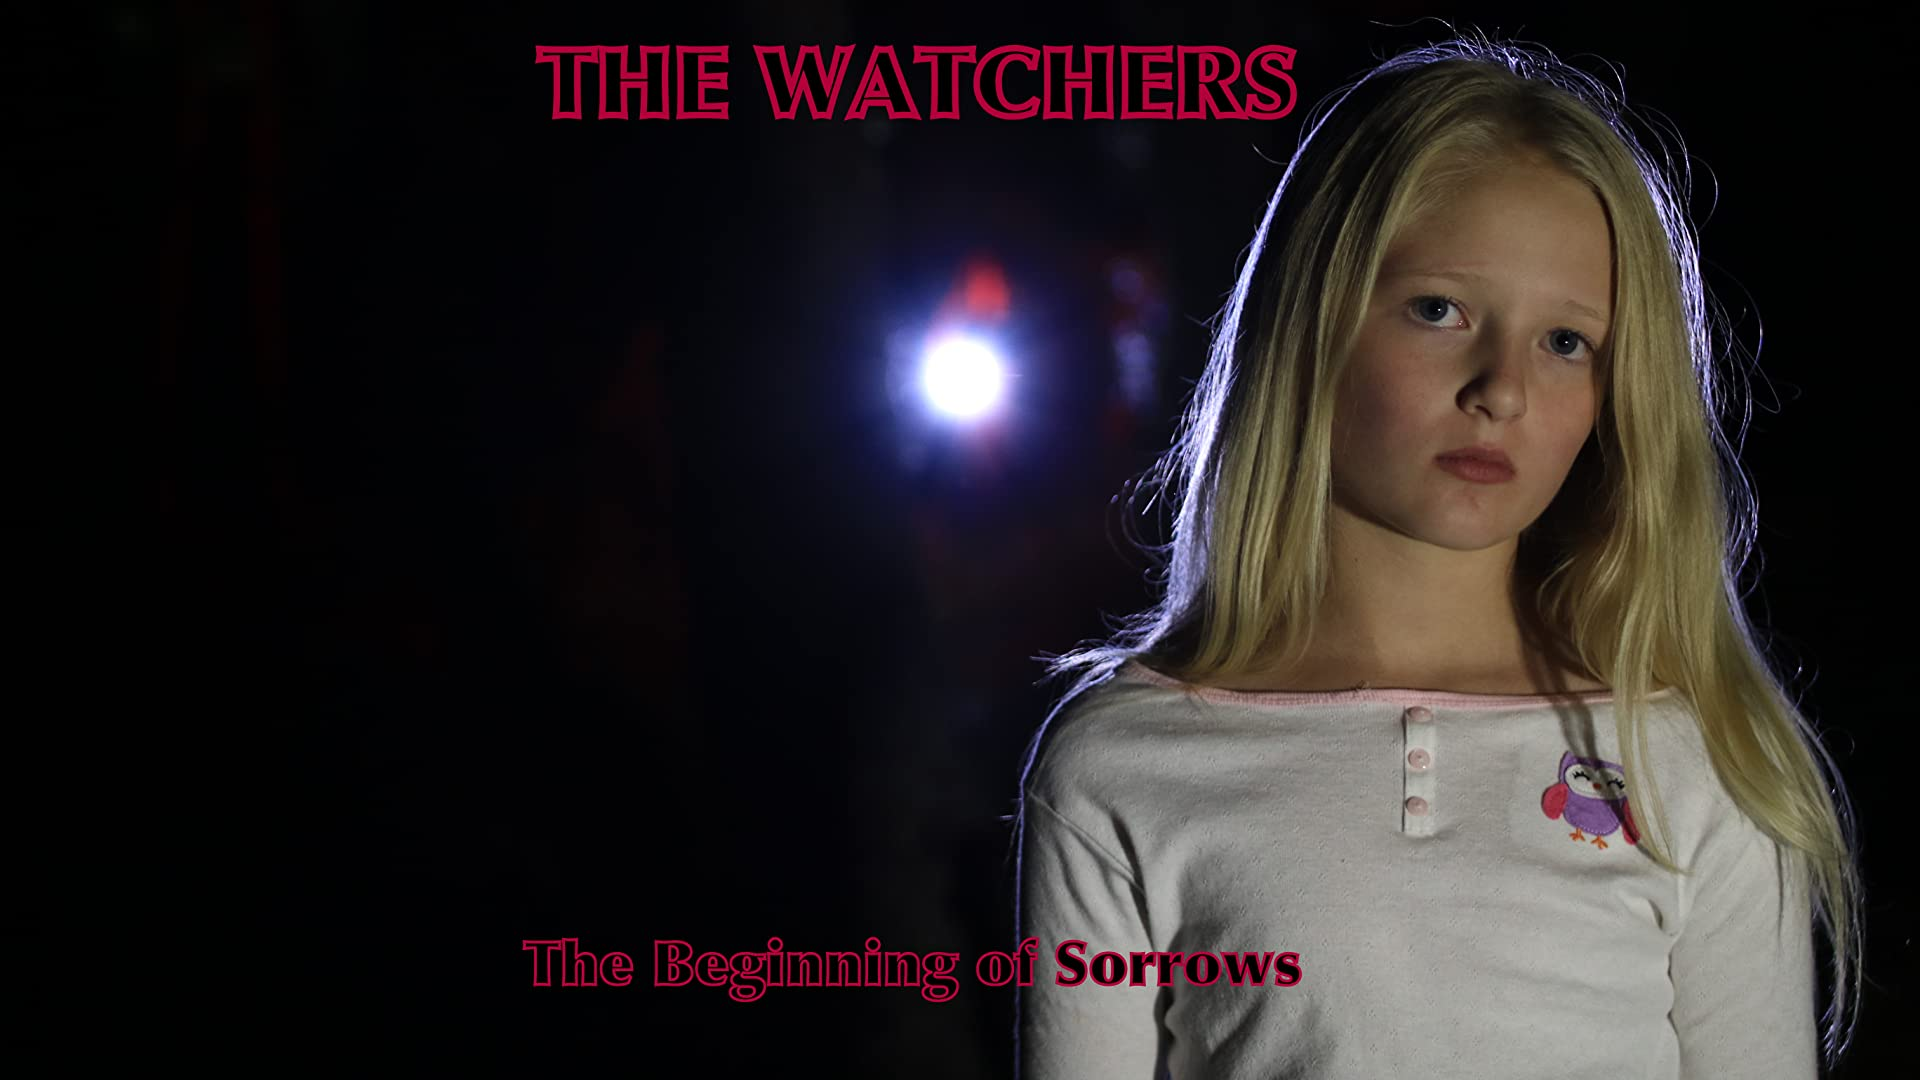 The Watchers: The Beginning of Sorrows